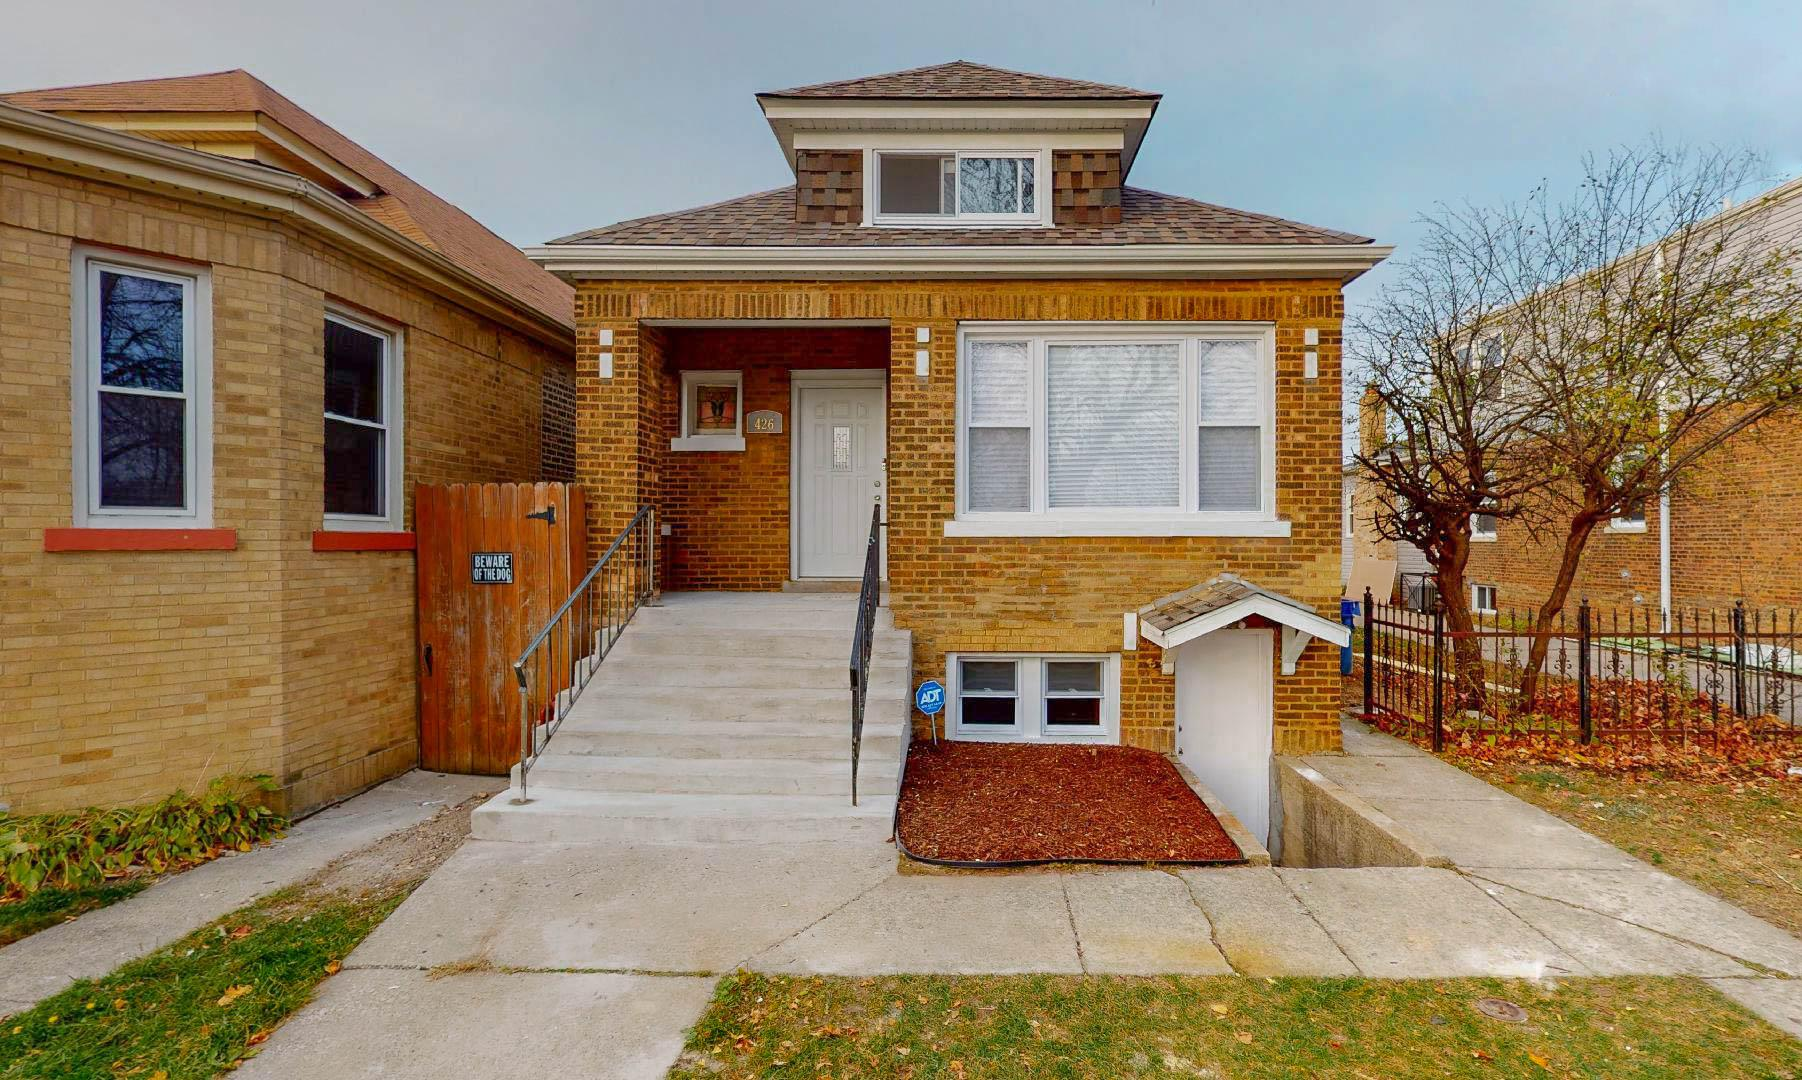 426 E 90th Street, Chicago, IL 60619 - #: 10941616